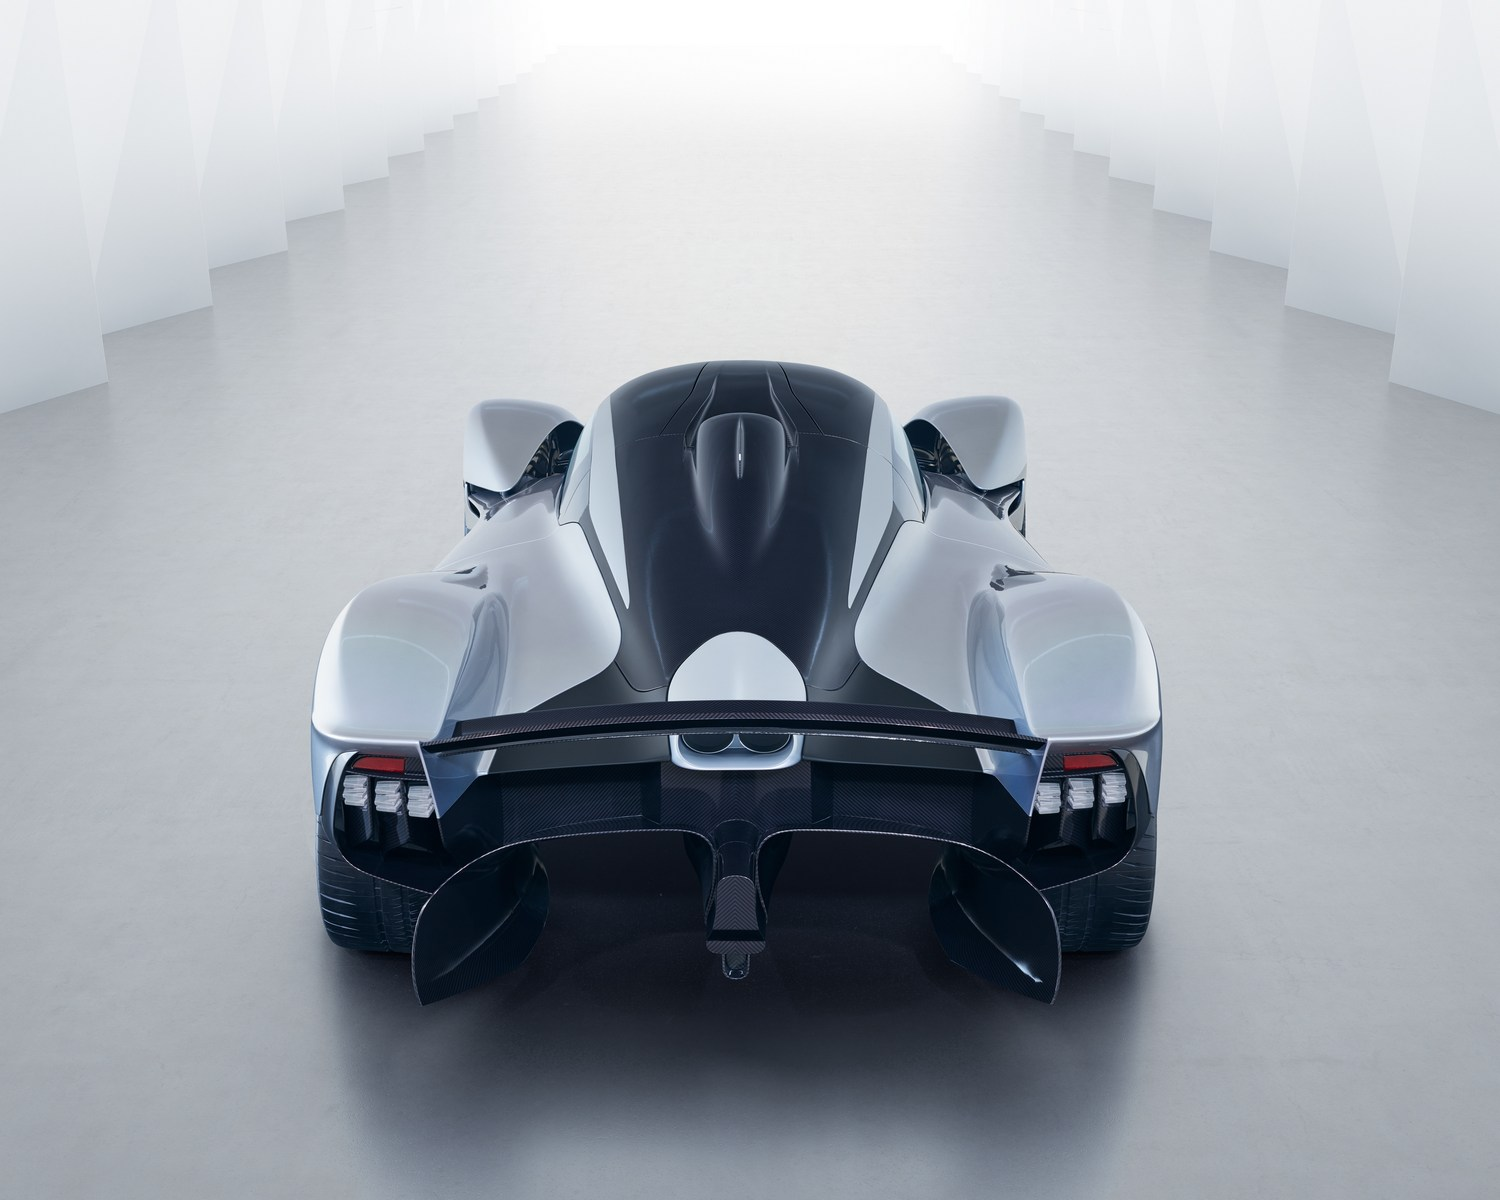 aston martin unveils updated valkyrie with improved aerodynamics